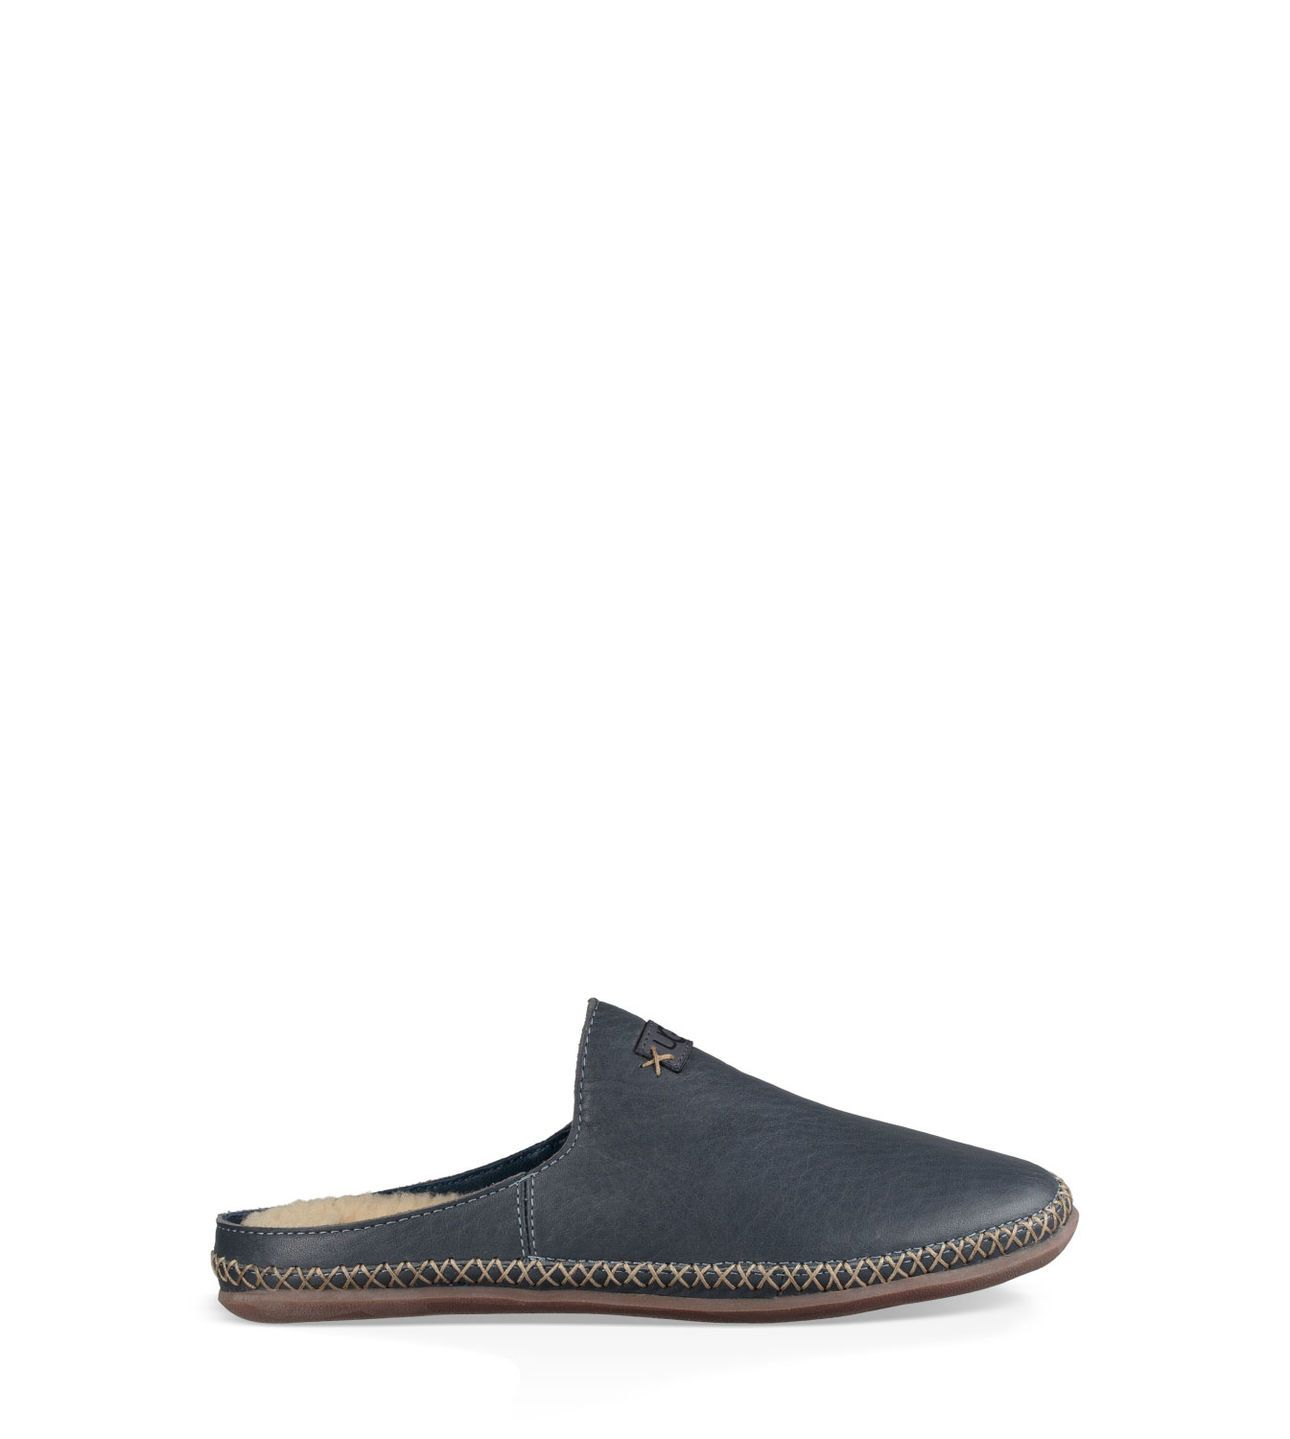 b299831dbf0 Shop the Tamara Slip-On Shoe